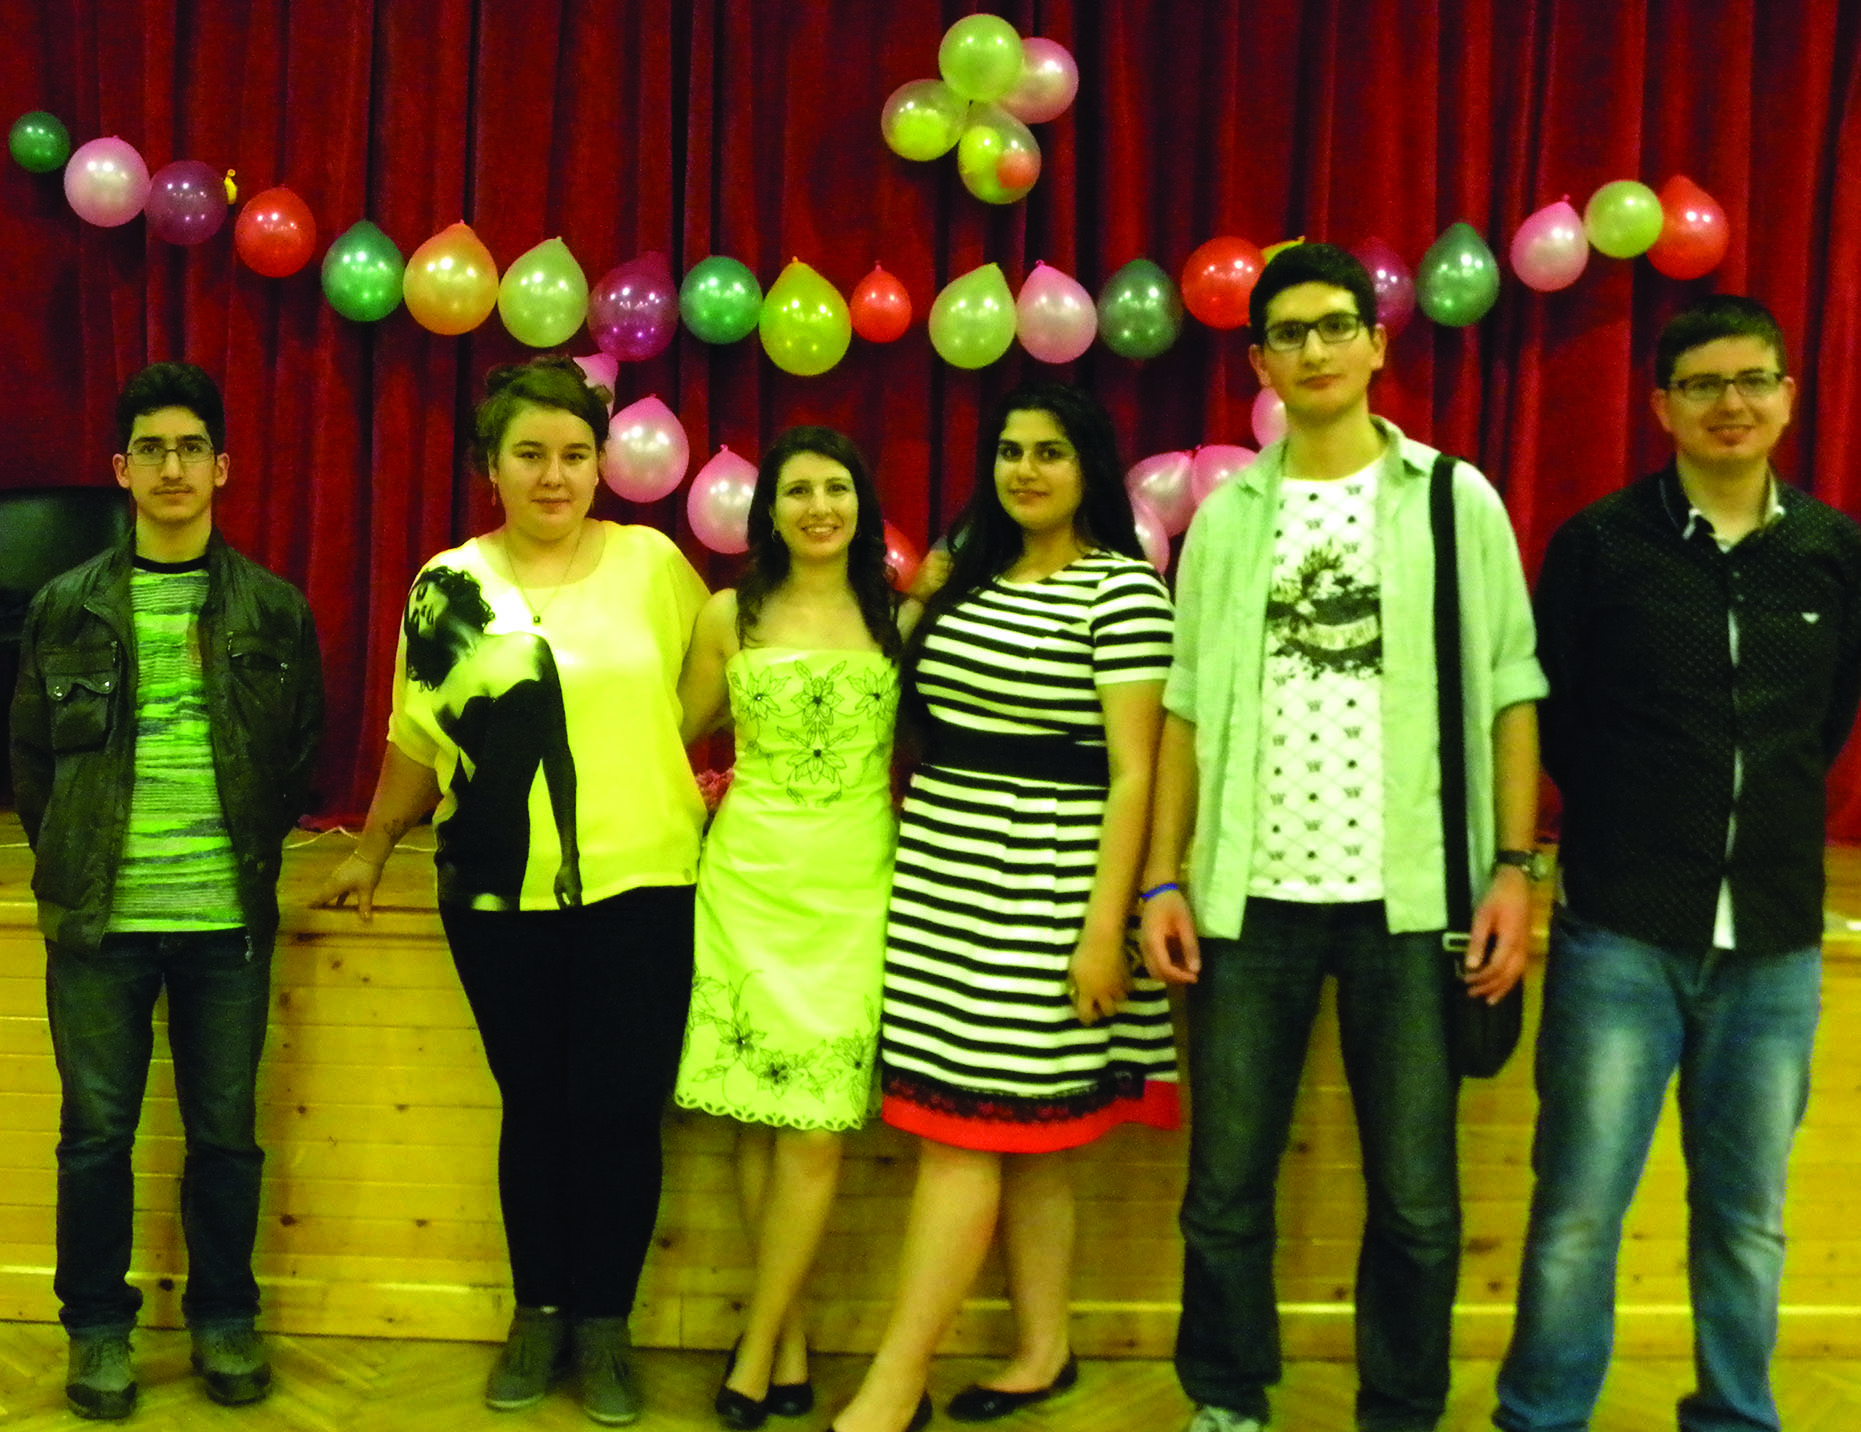 YOUTH CLUB OF AGBU PLOVDIV CHAPTER WILL WORK FOR VARIOUS CAUSES_2